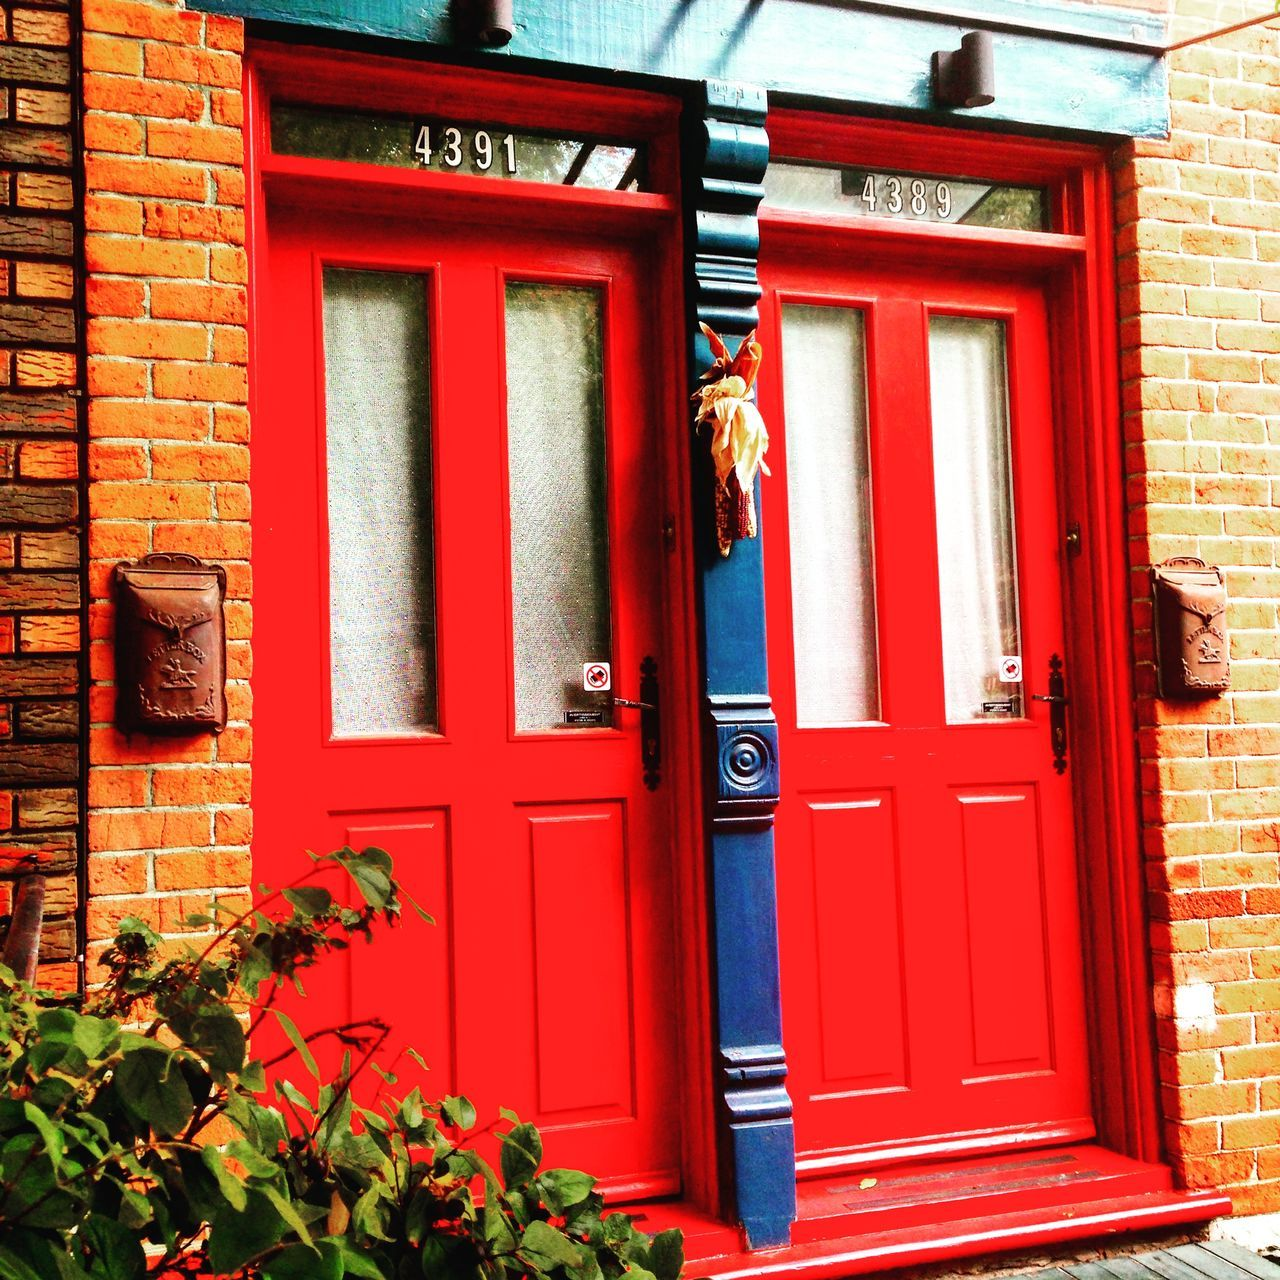 Plateau Fall Beauty Doors Red My Neiborhood Montreal, Canada Montrealcity Montréal